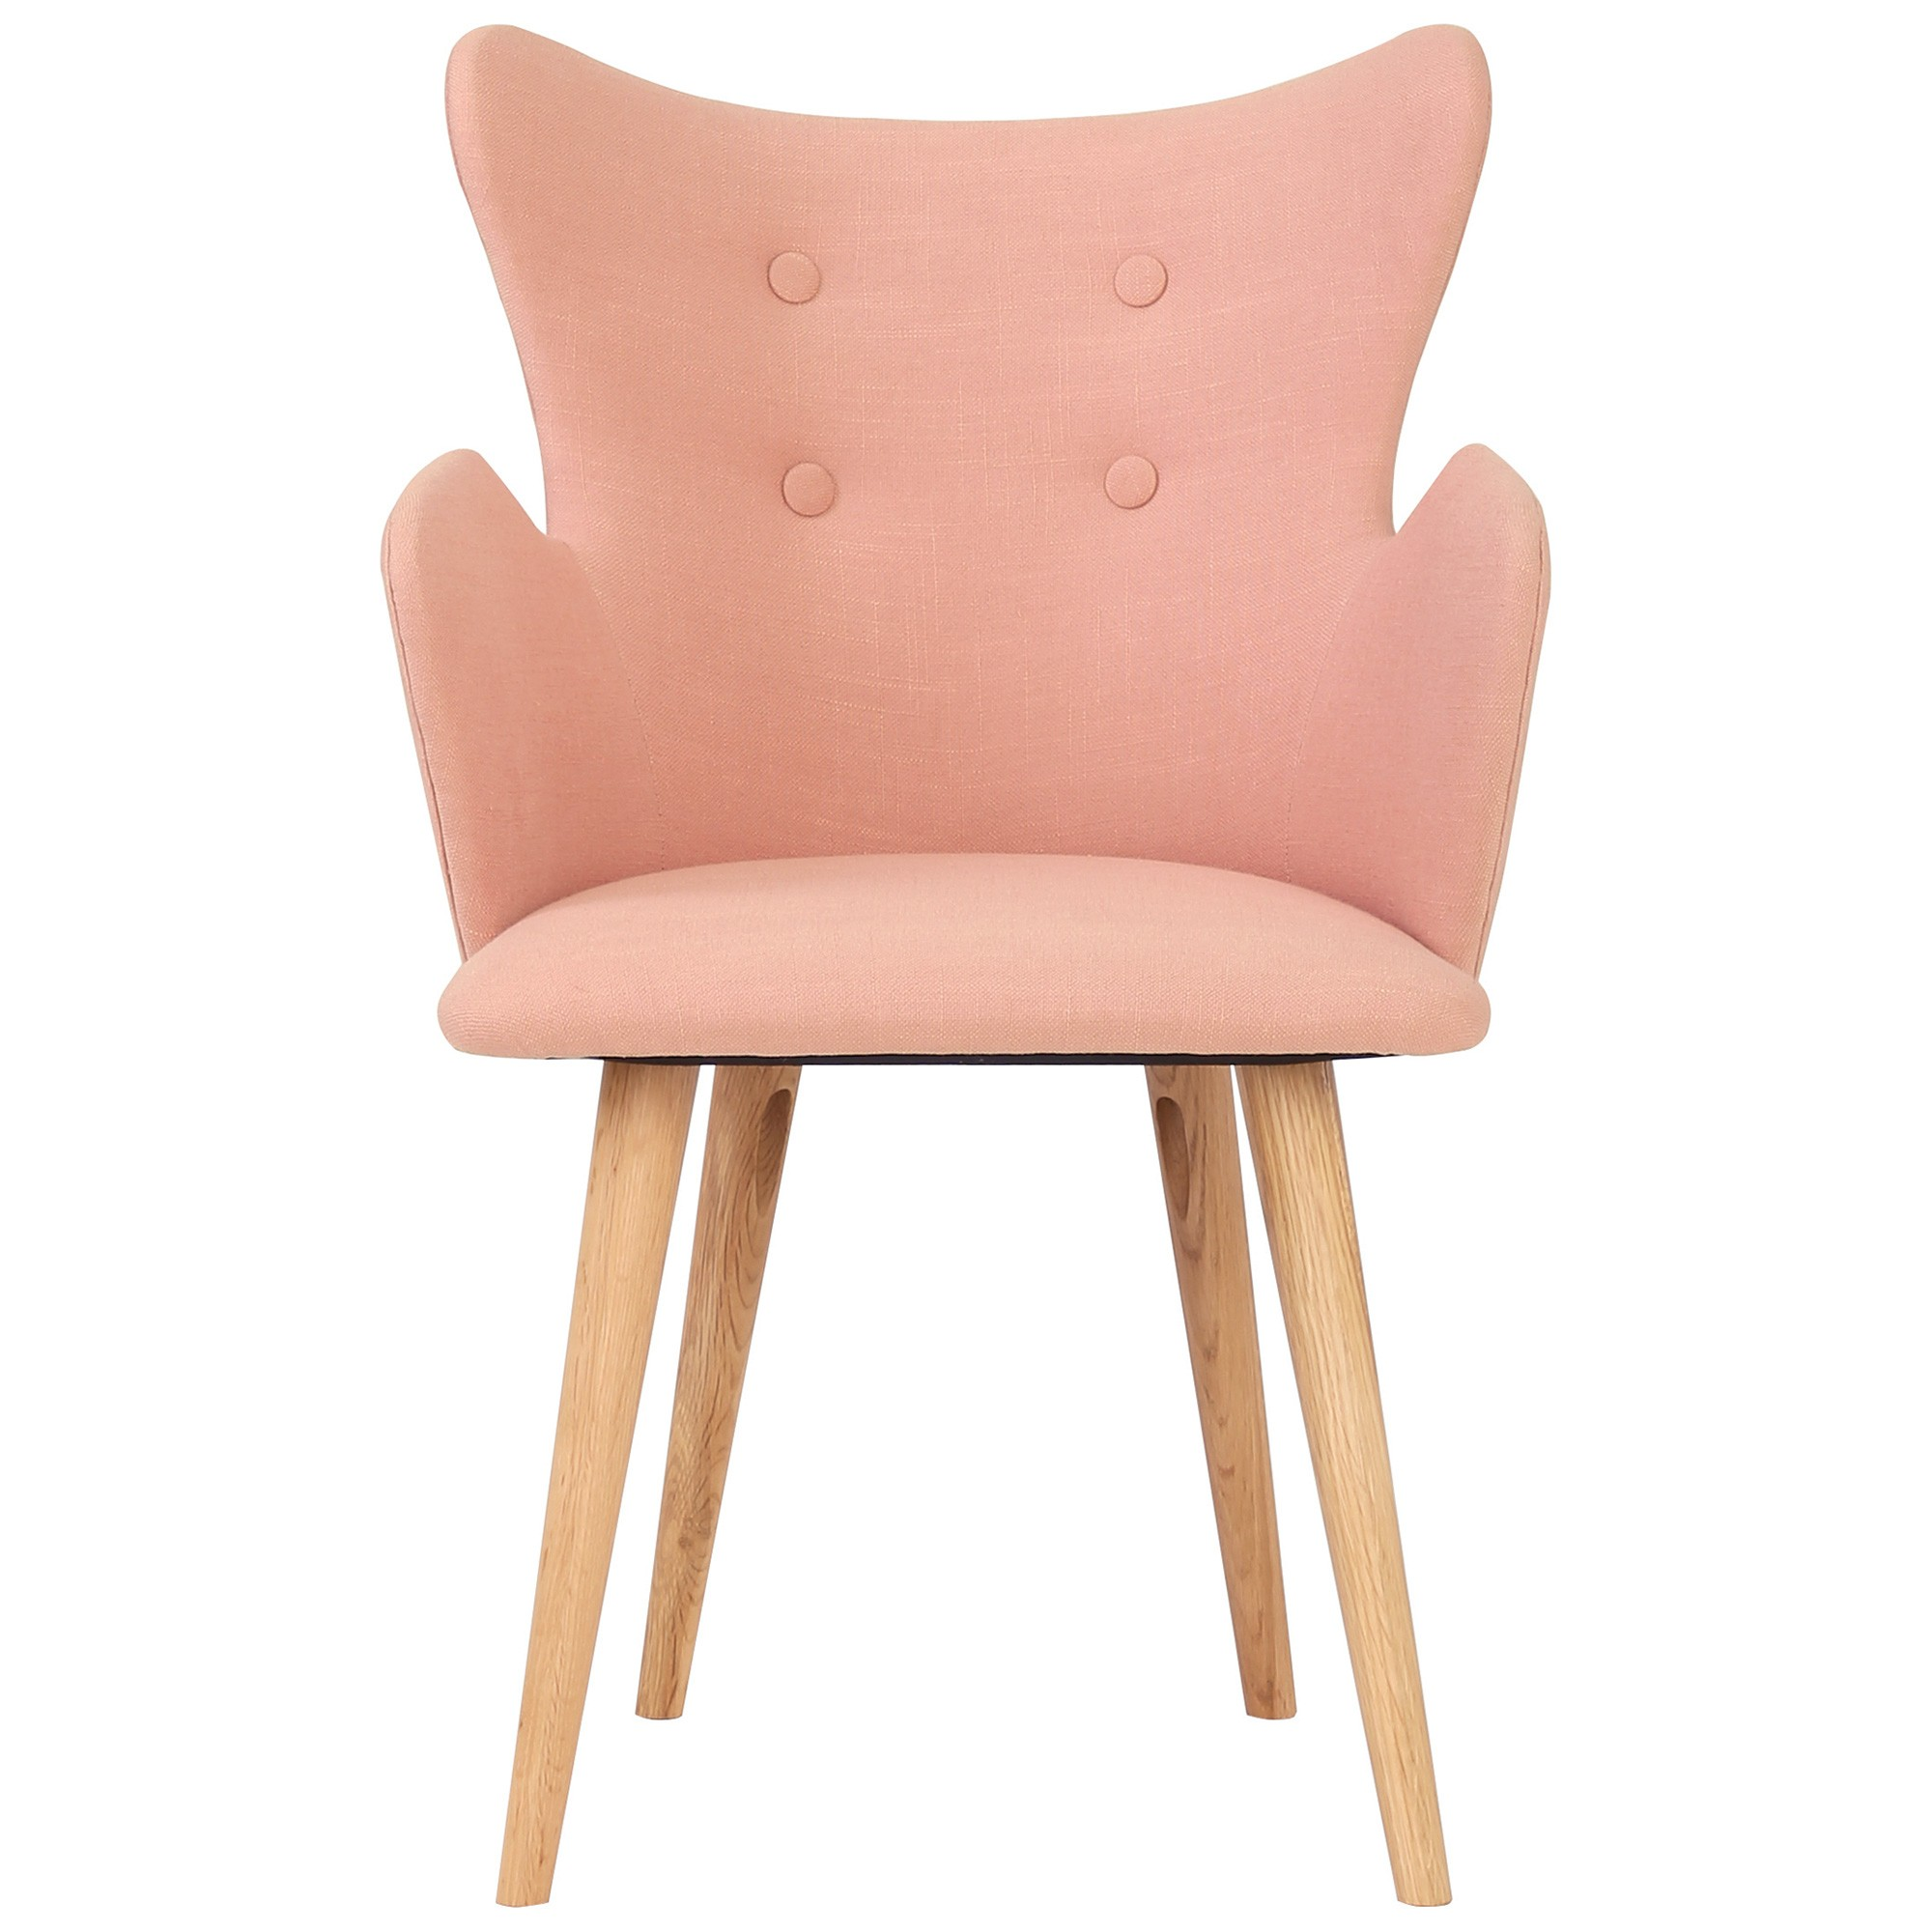 Kachina Fabric Dining Chair, Coral / Natural